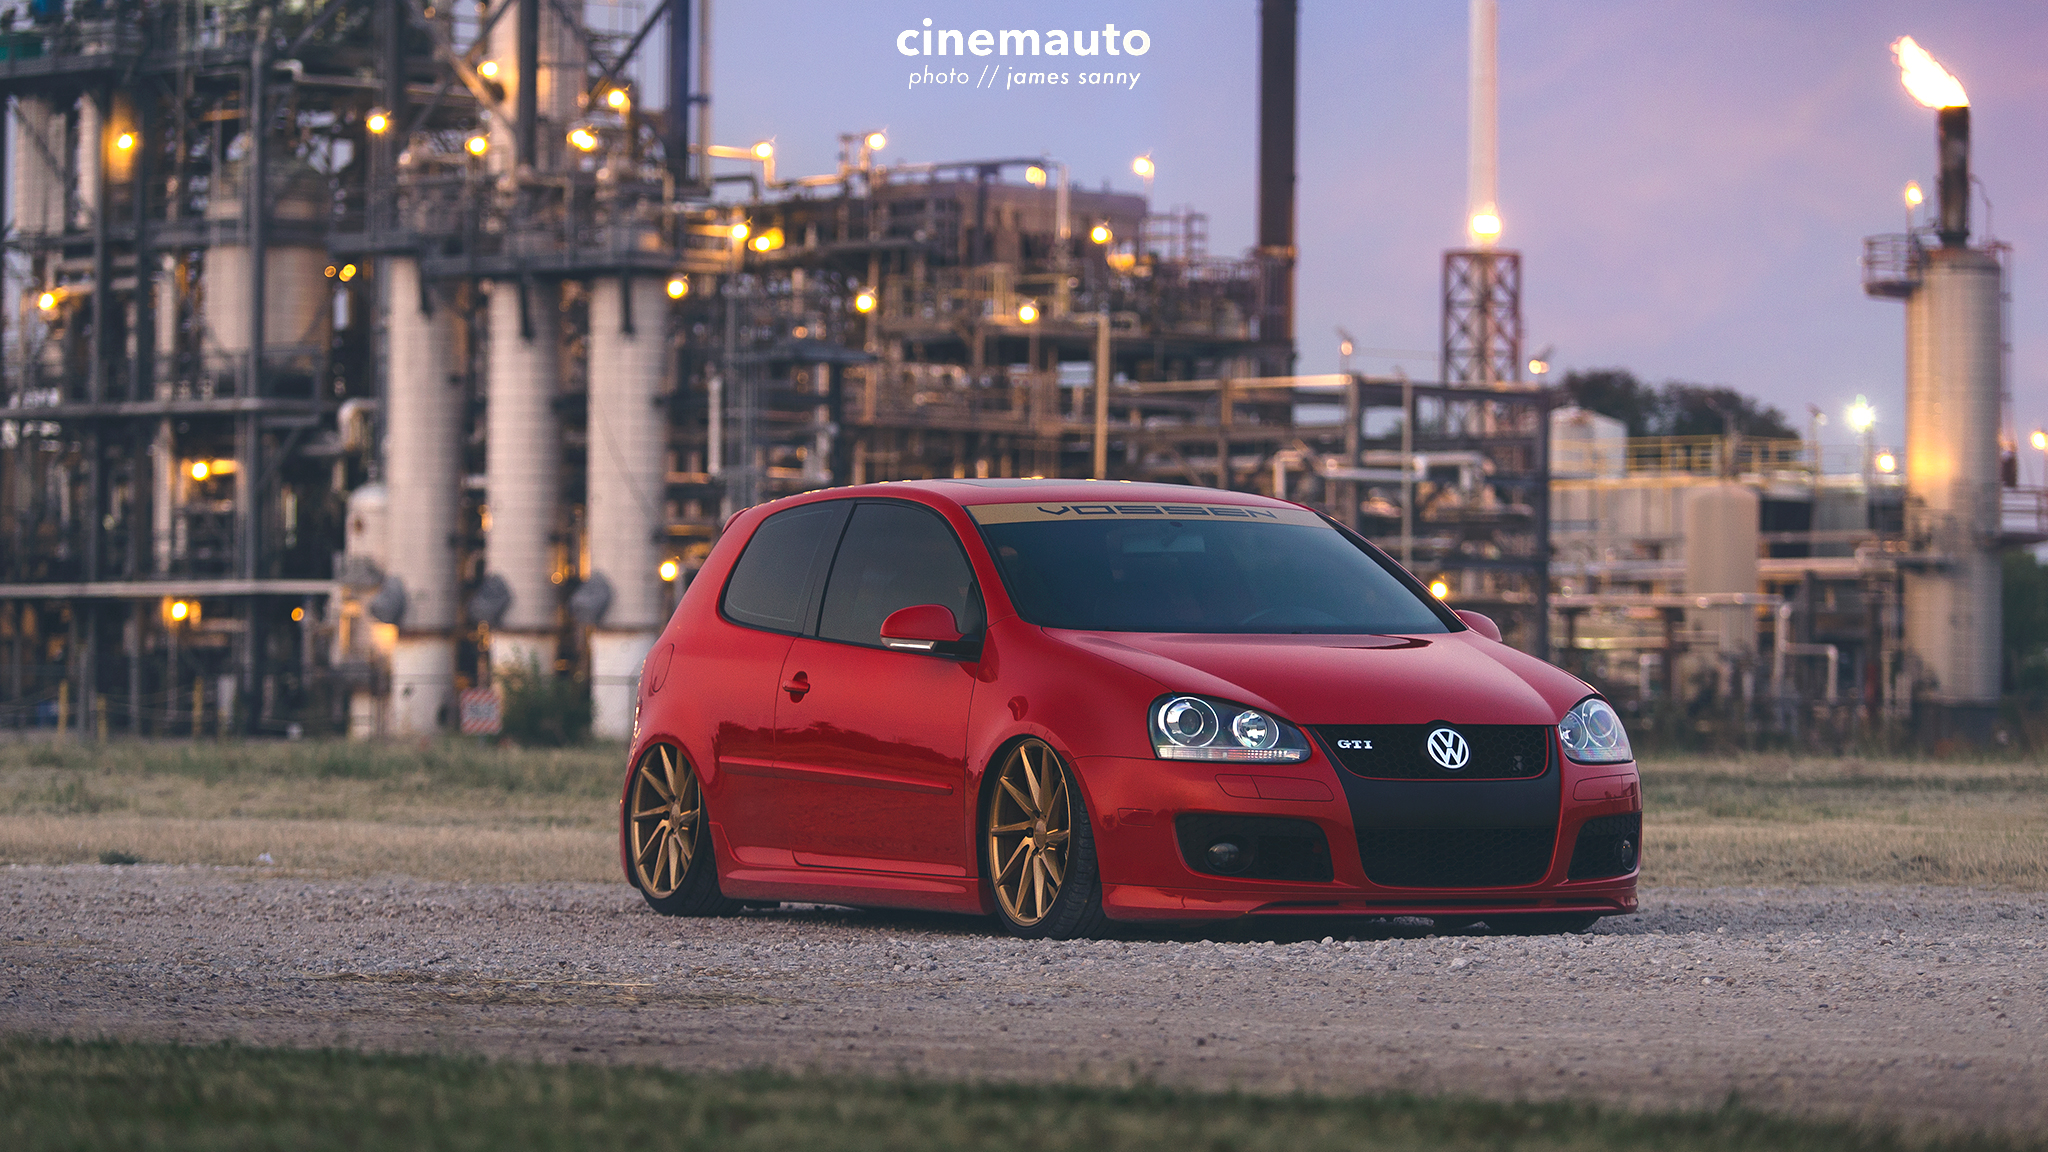 wichita-automotive-photographer-kansas-gti1.jpg